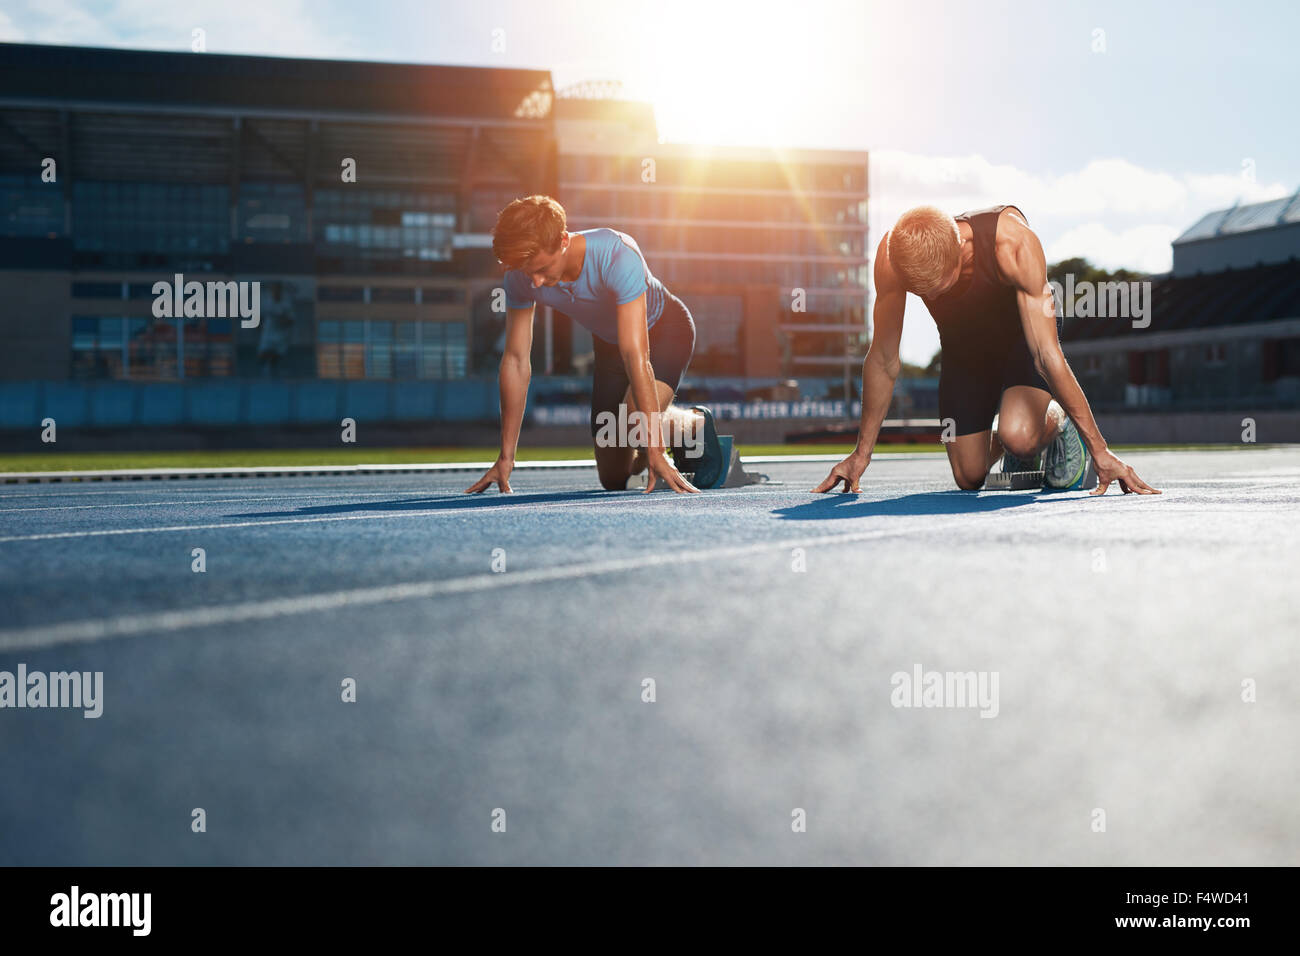 Young athletes preparing to race in start blocks in stadium. Sprinters at starting blocks ready for race with sun - Stock Image